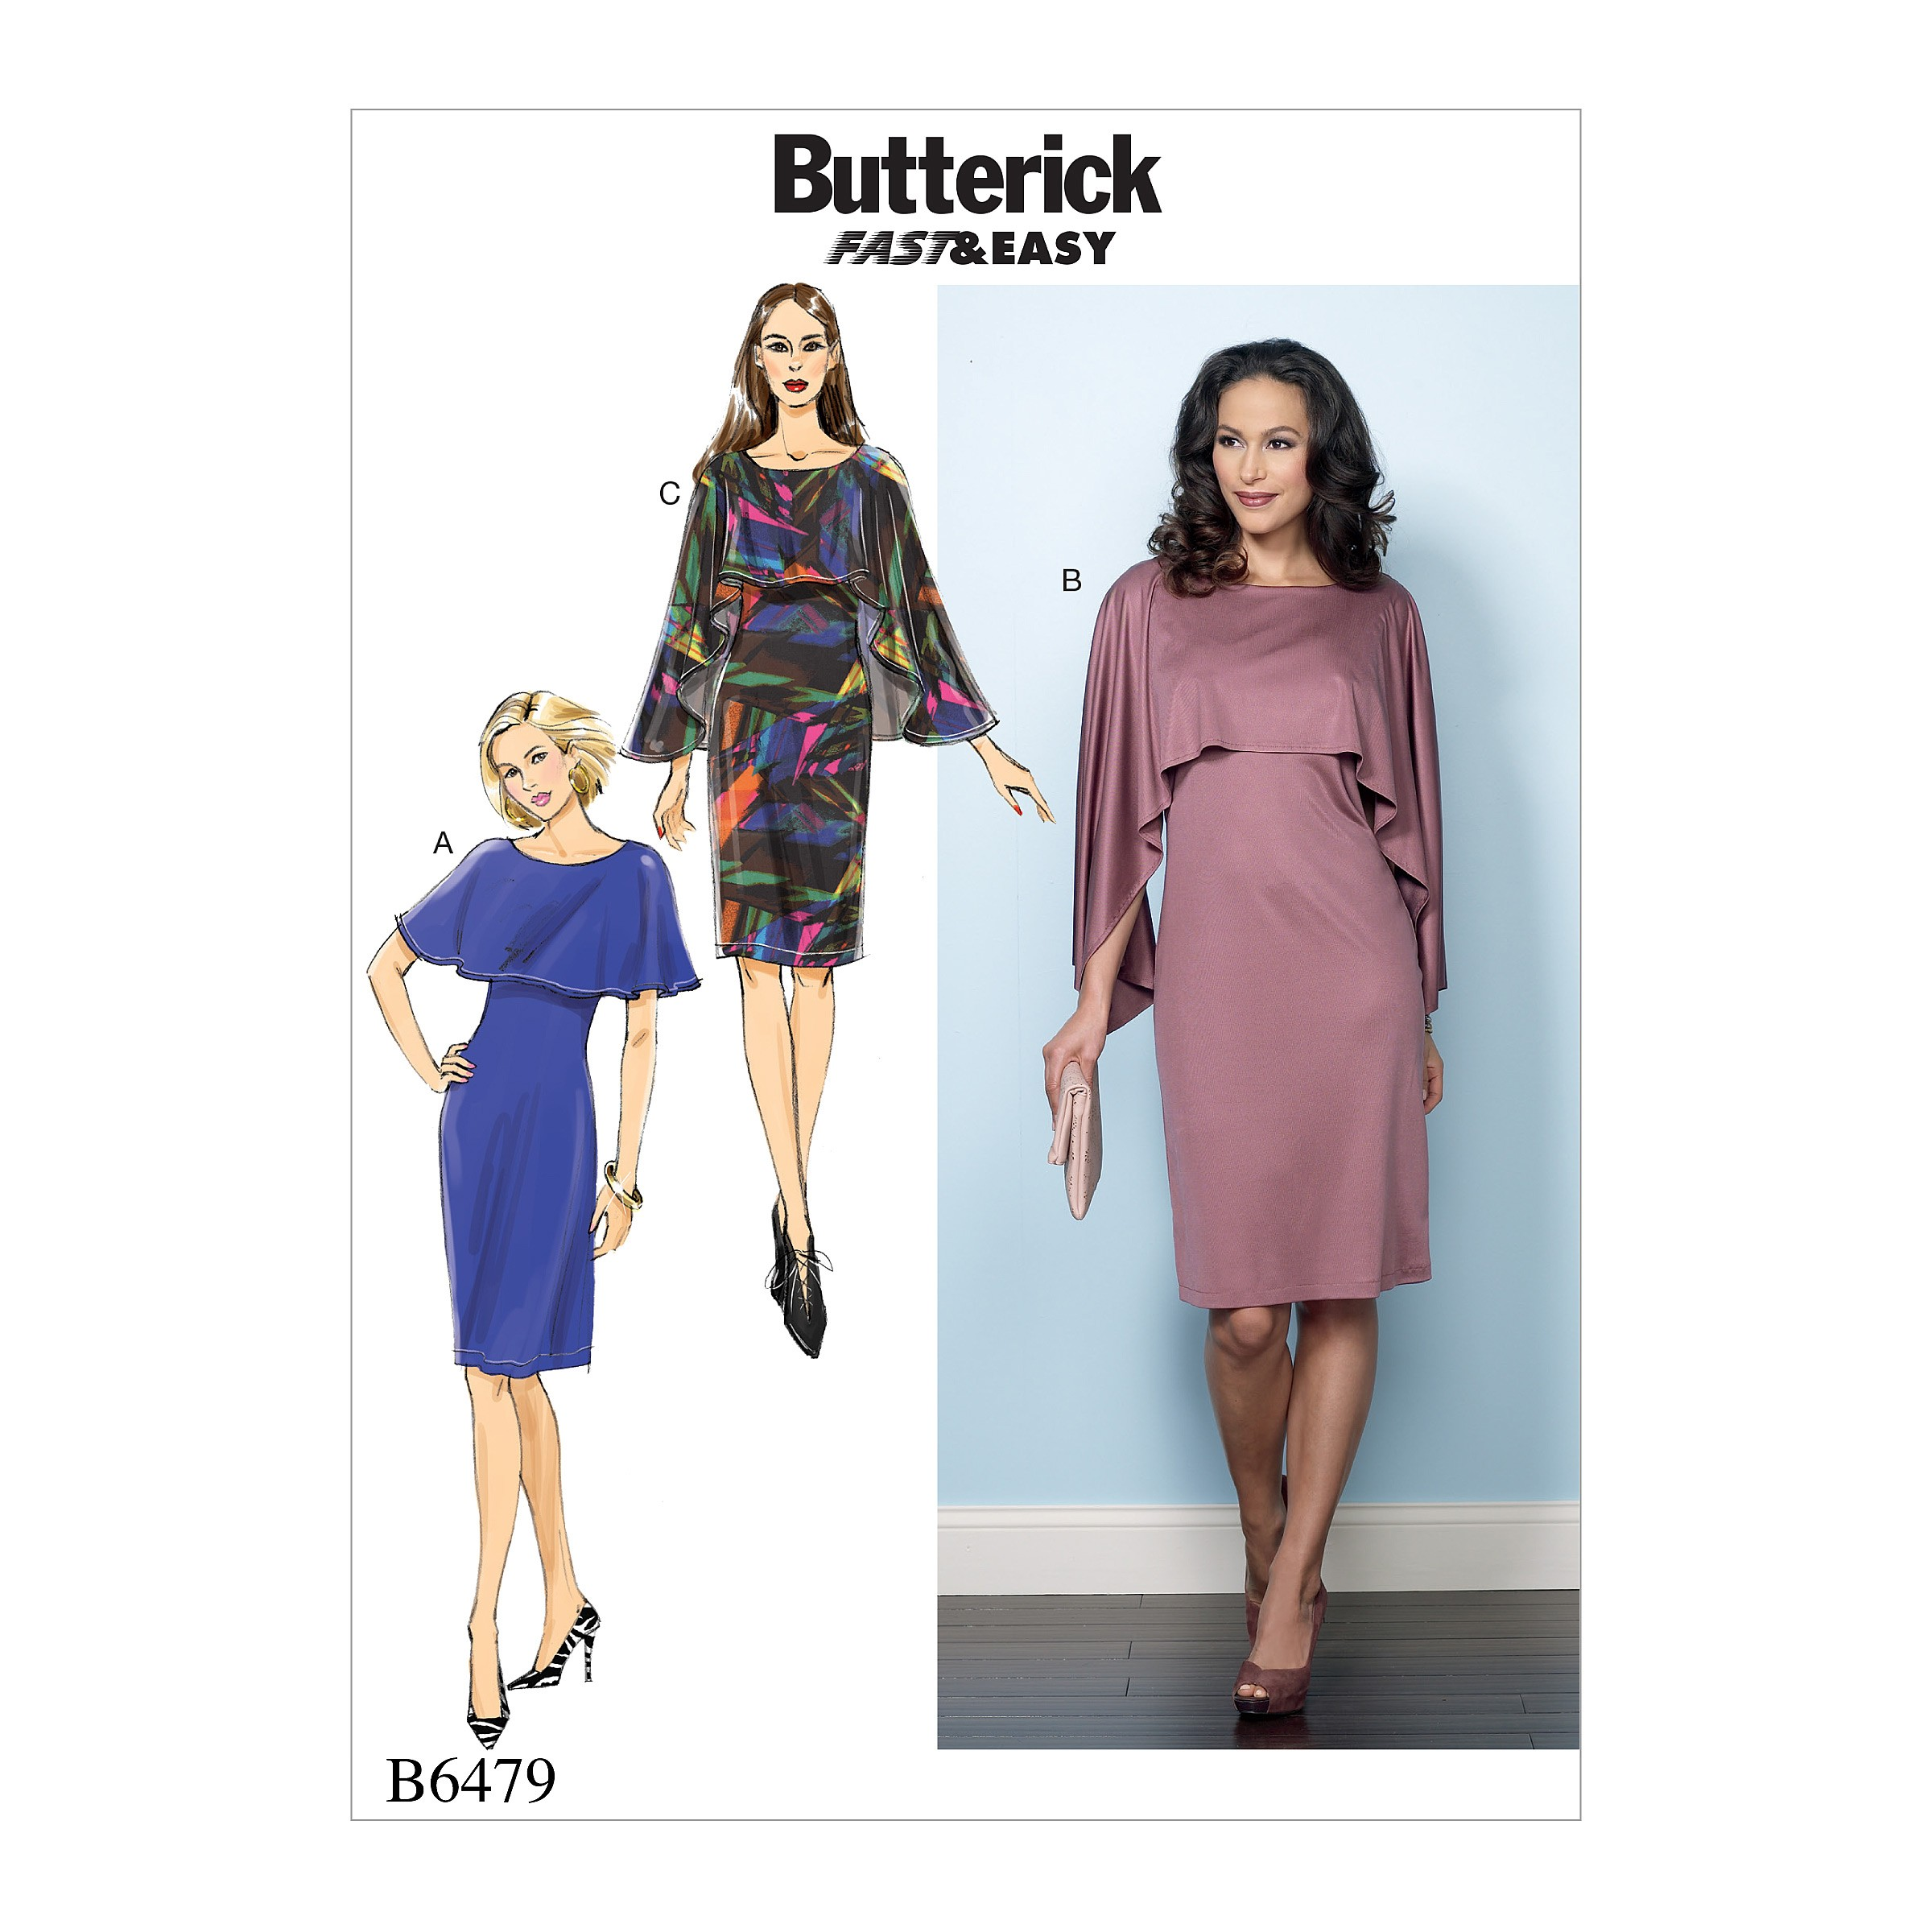 Butterick Sewing Pattern 6479 Misses' Pullover Dress with Attached Capelet